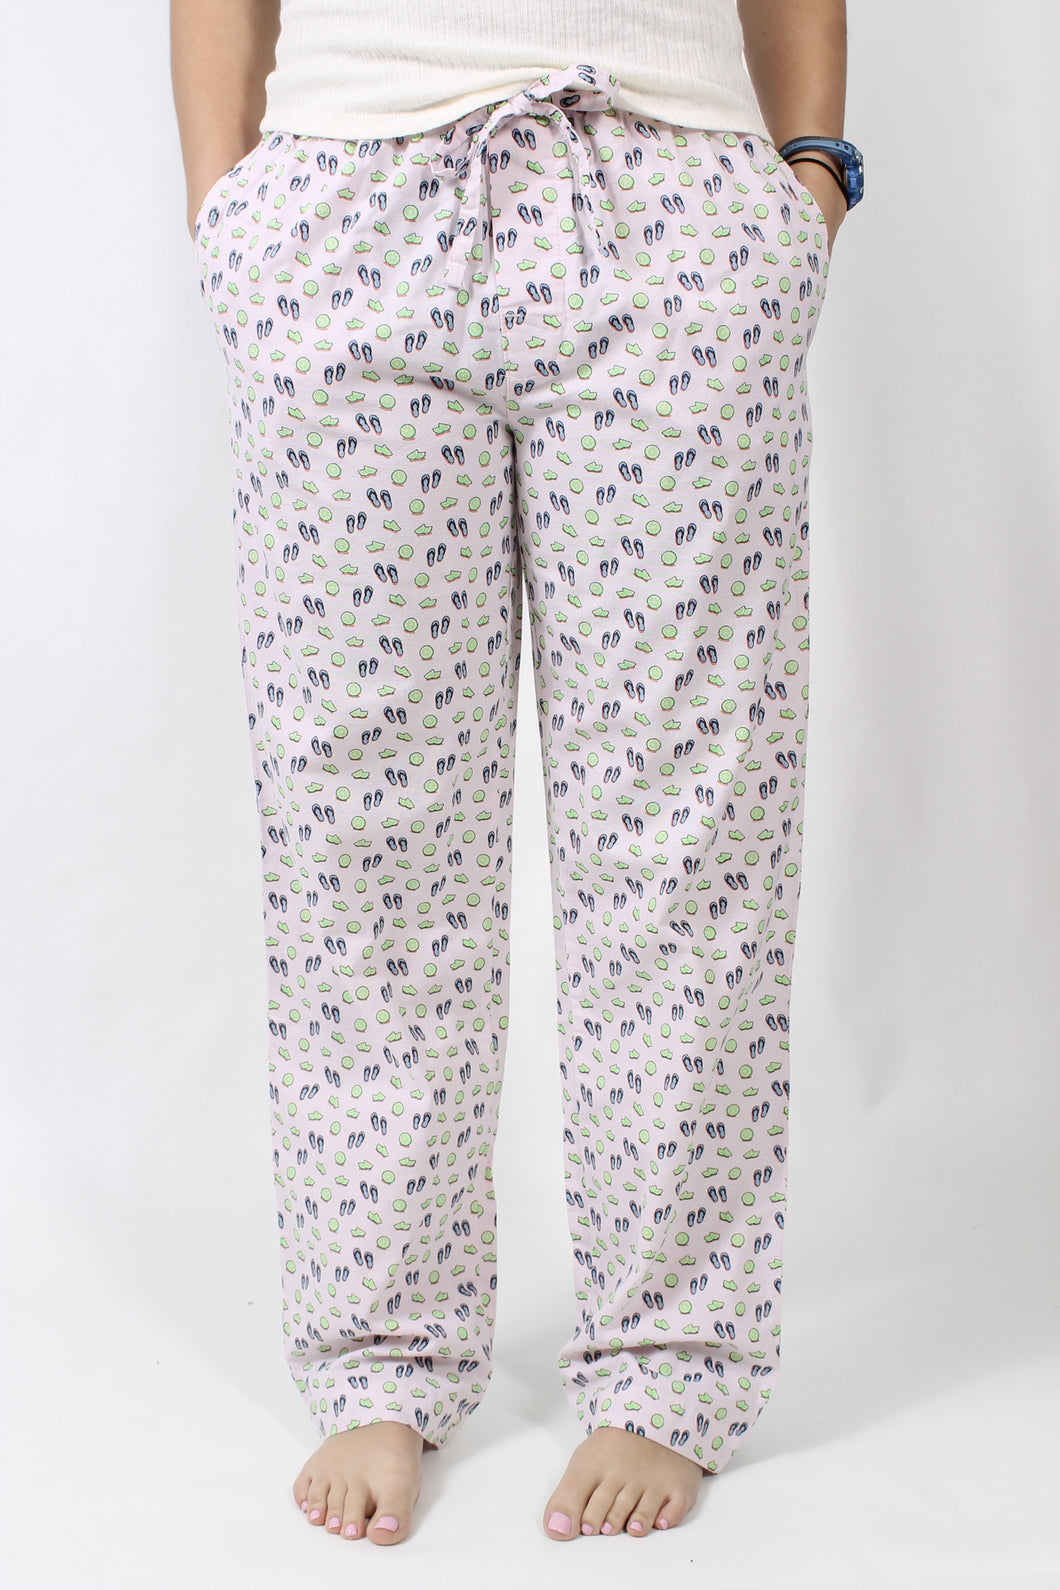 Cameilia with Lime PJs- Southern Marsh Savannah Pastimes Lounge Pant Front